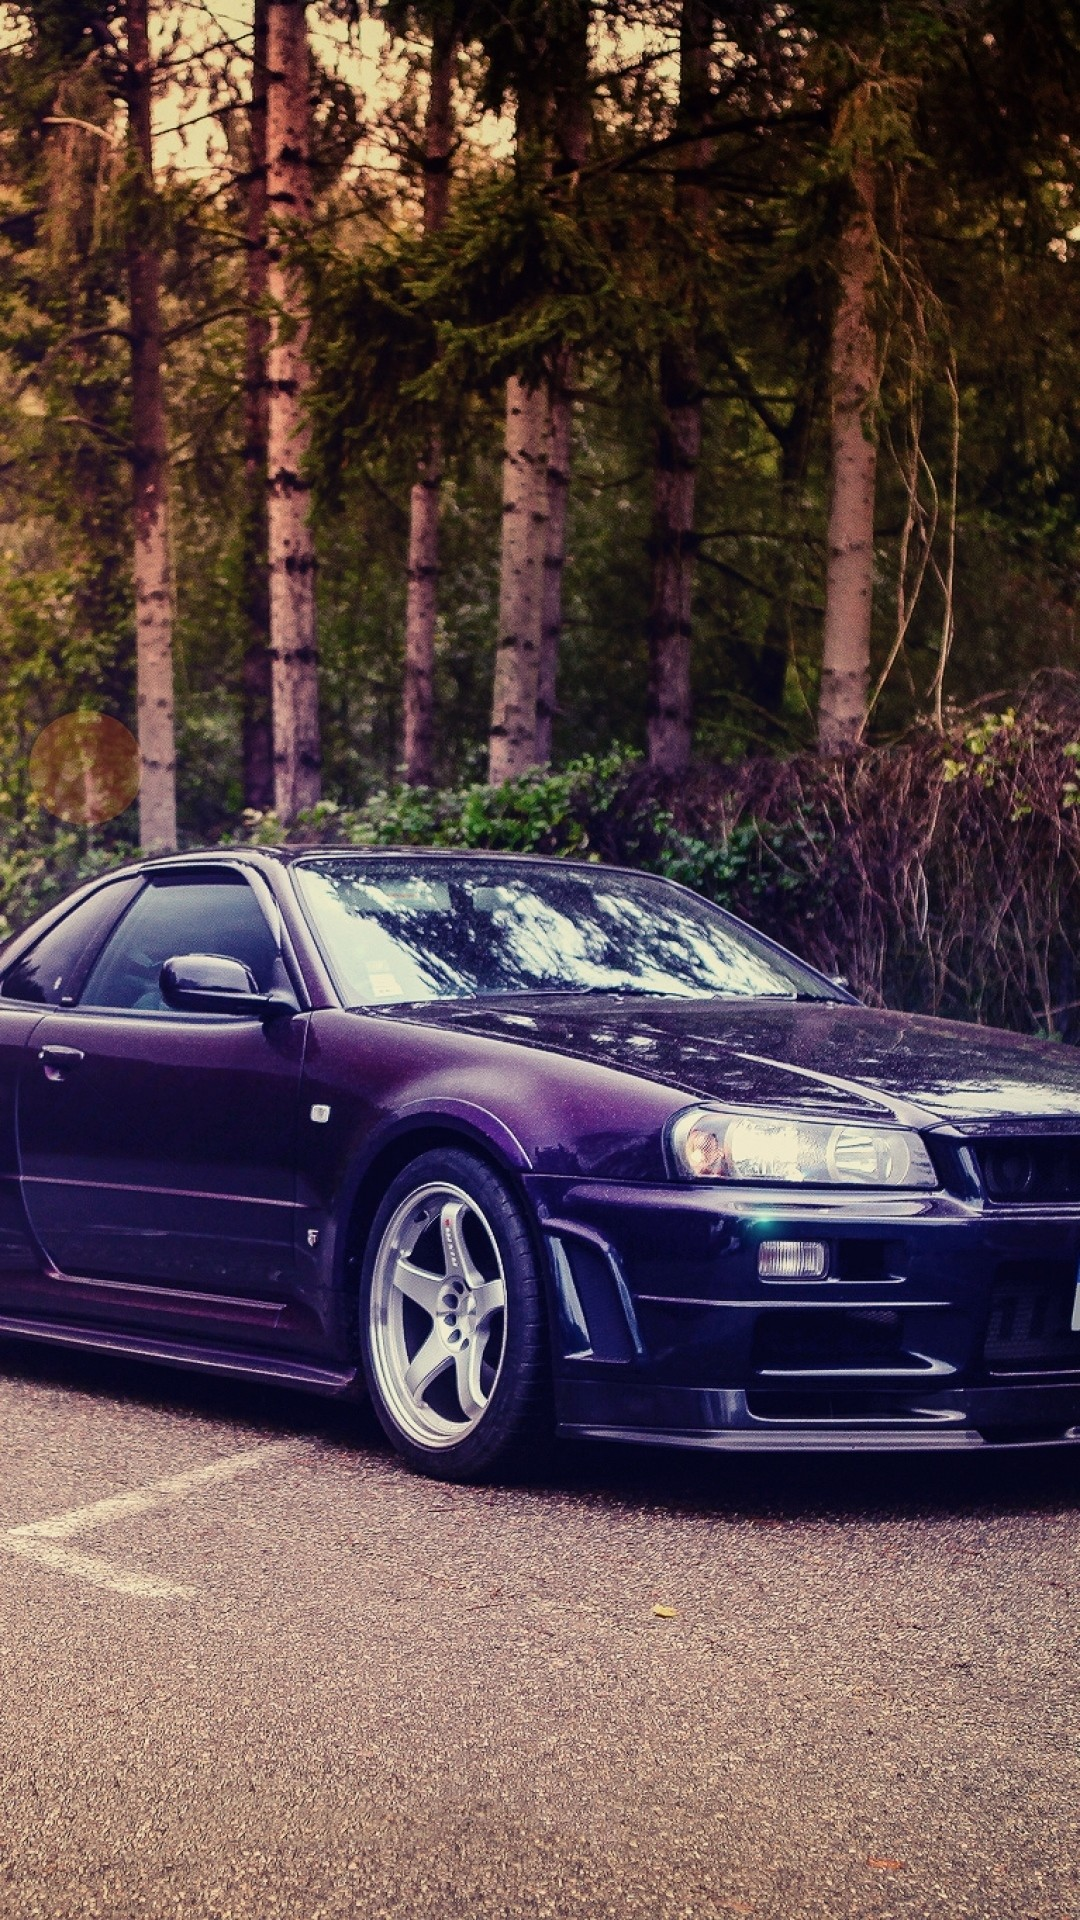 Nissan skyline gt r r34 wallpapers 70 images - Nissan skyline background ...